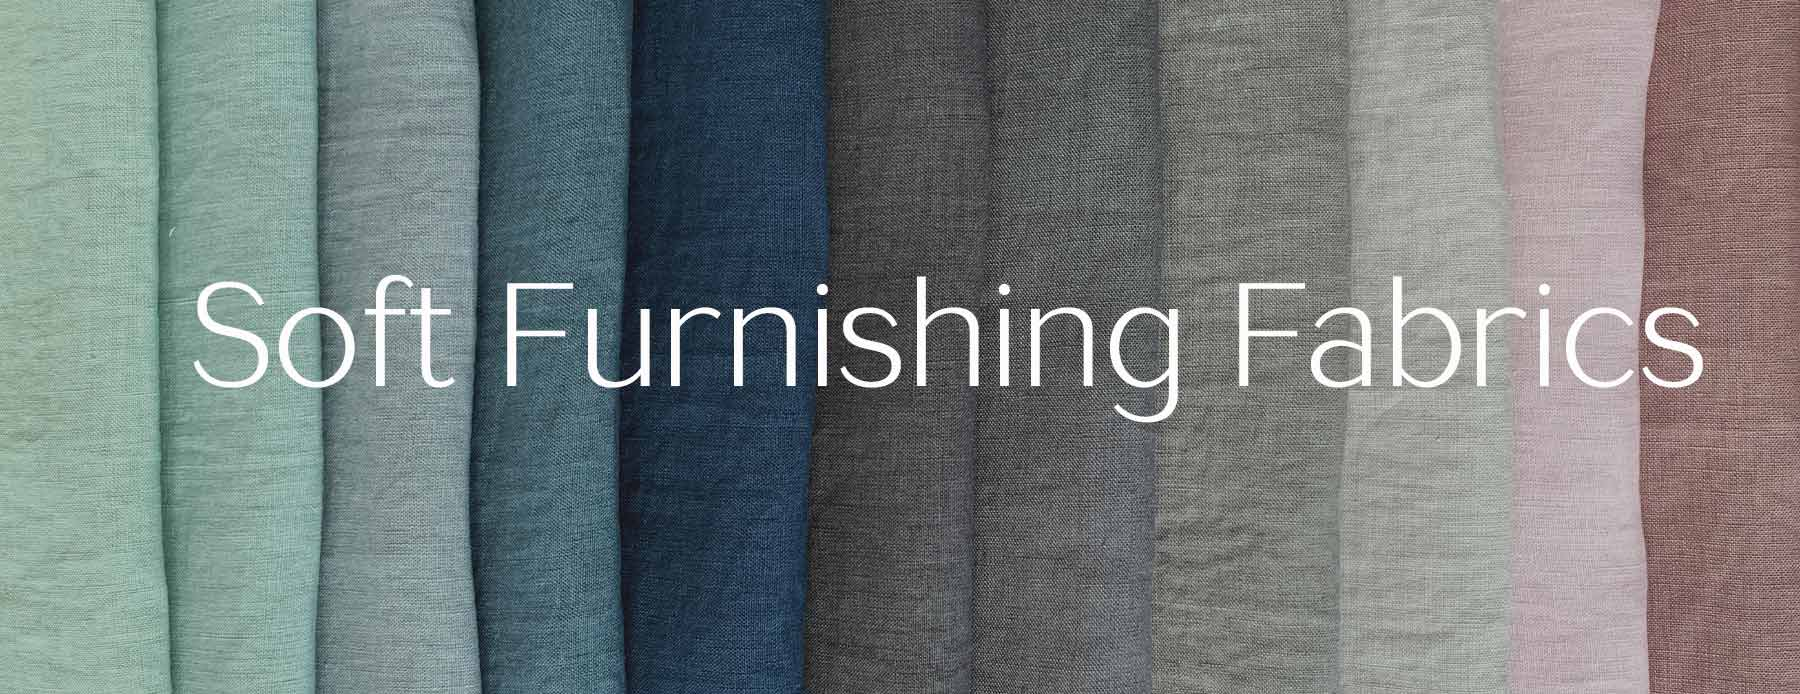 Soft Furnishing Fabrics